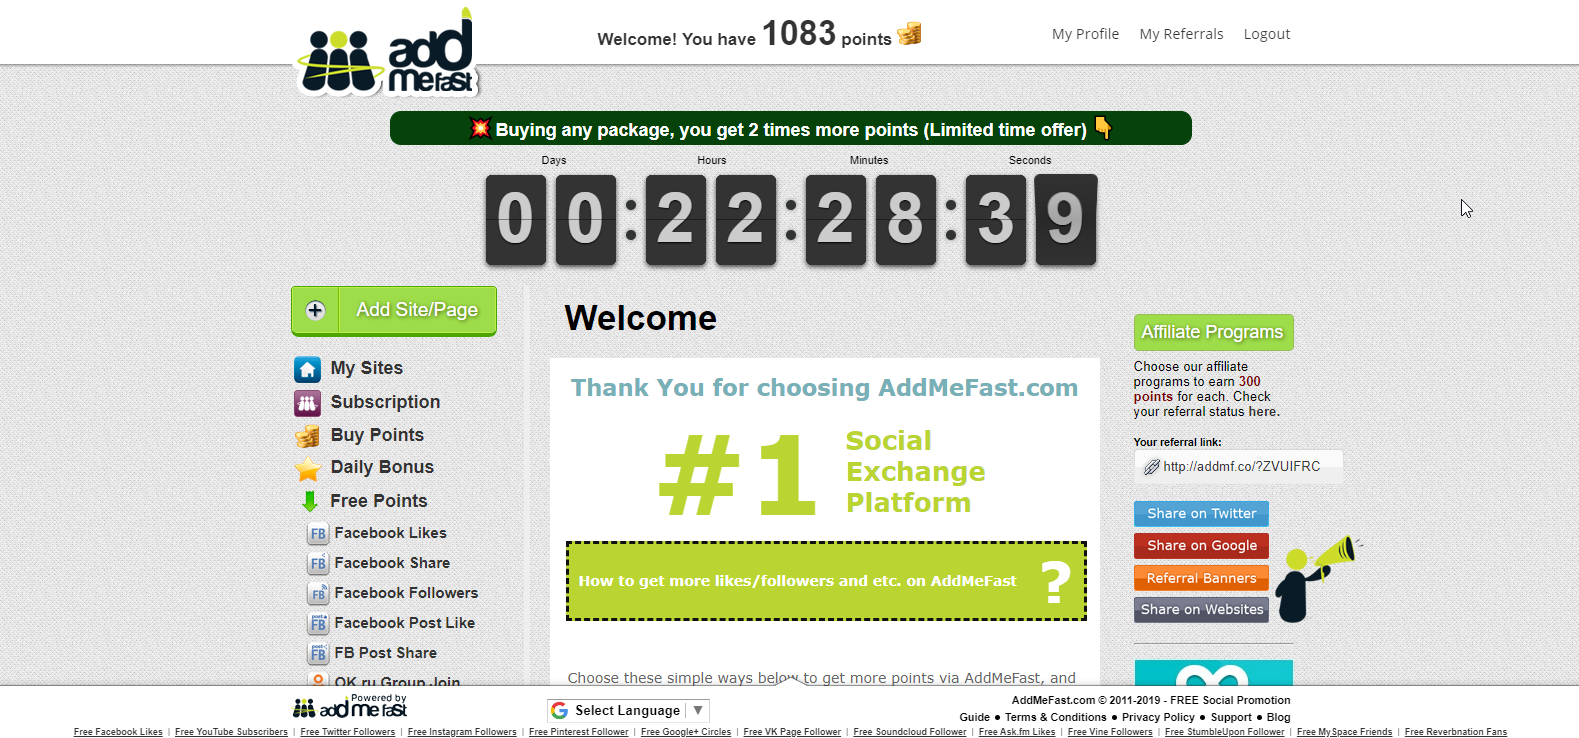 AddMeFast Social Media Exchange Platform